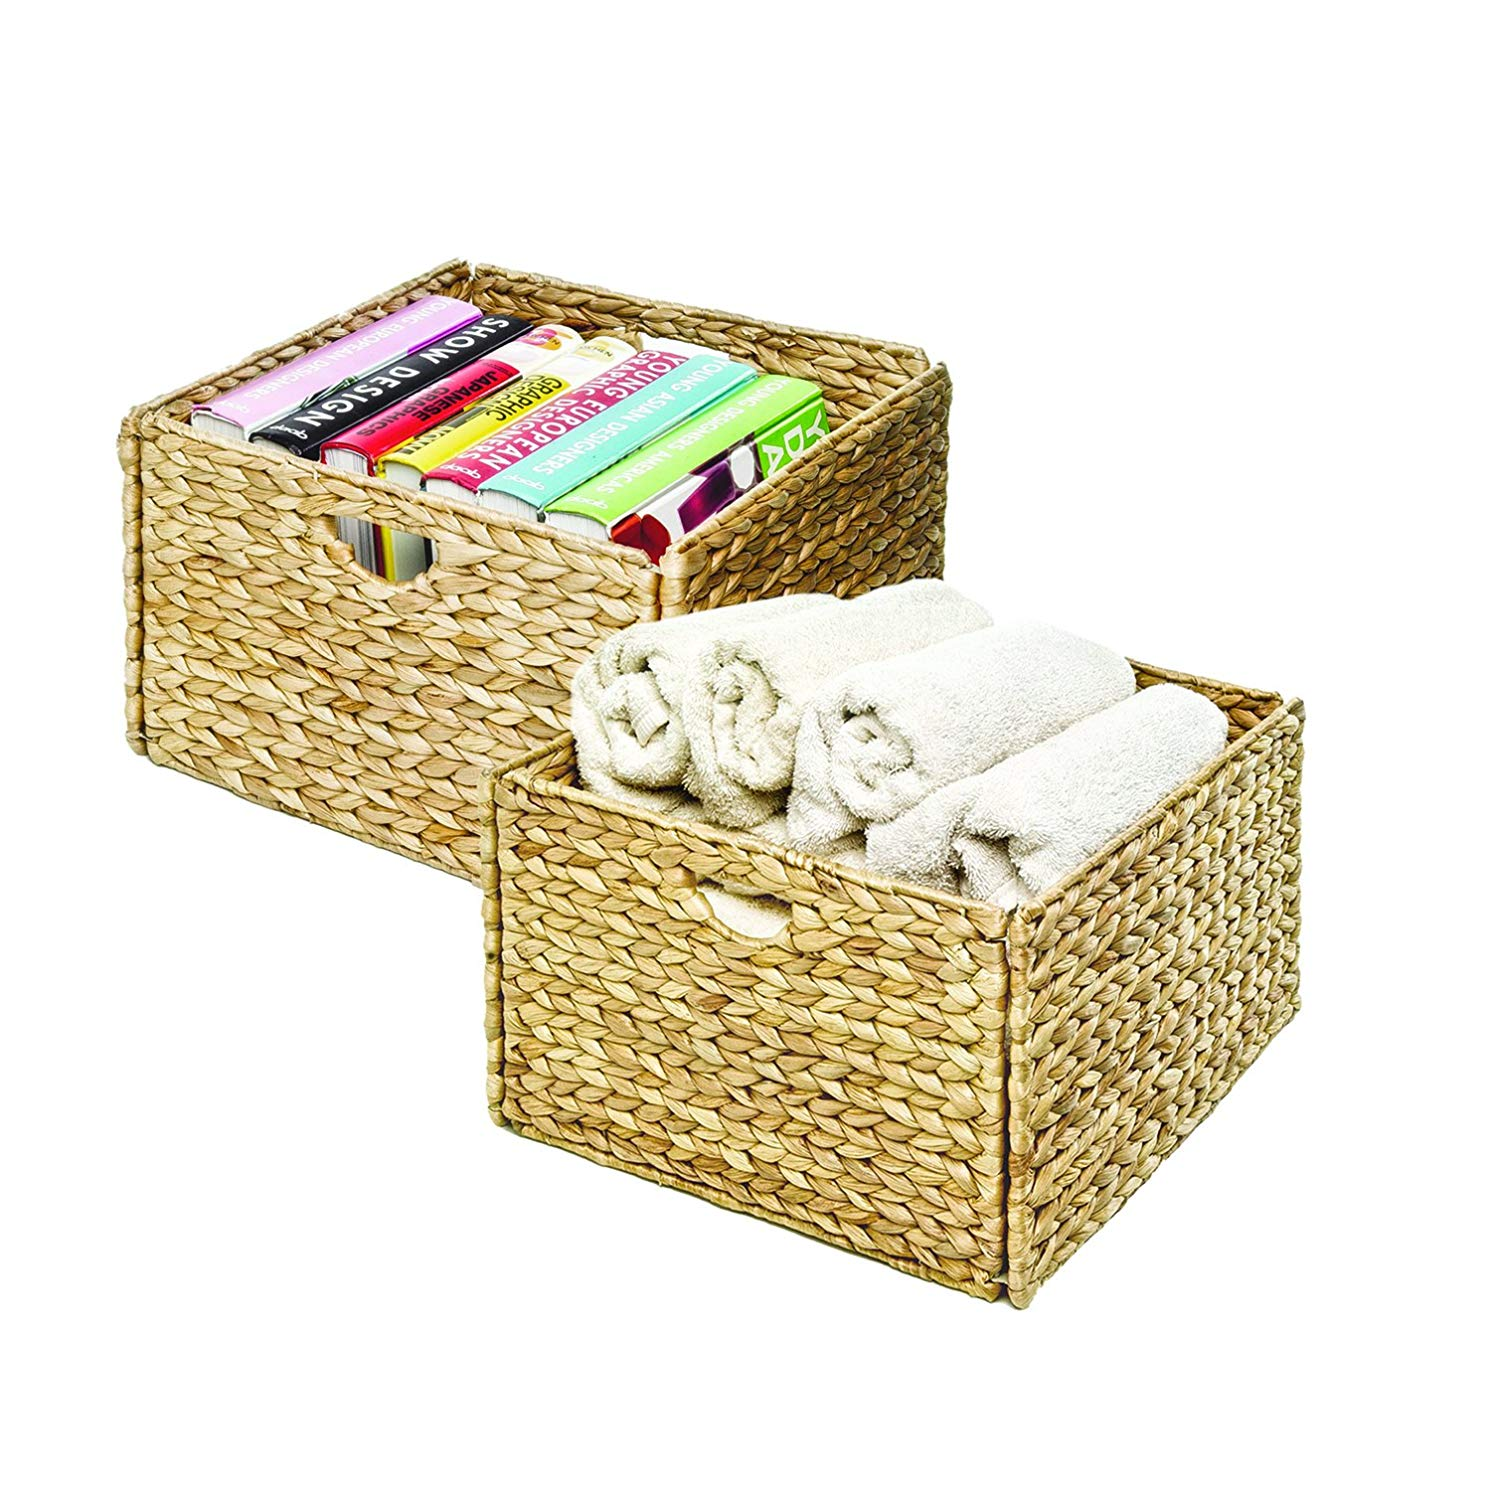 Hand-Woven Water Hyacinth Storage Baskets, 2-Pack, Dimensions: 13.25 x 13.25 x 8 H (each basket) By Seville Classics